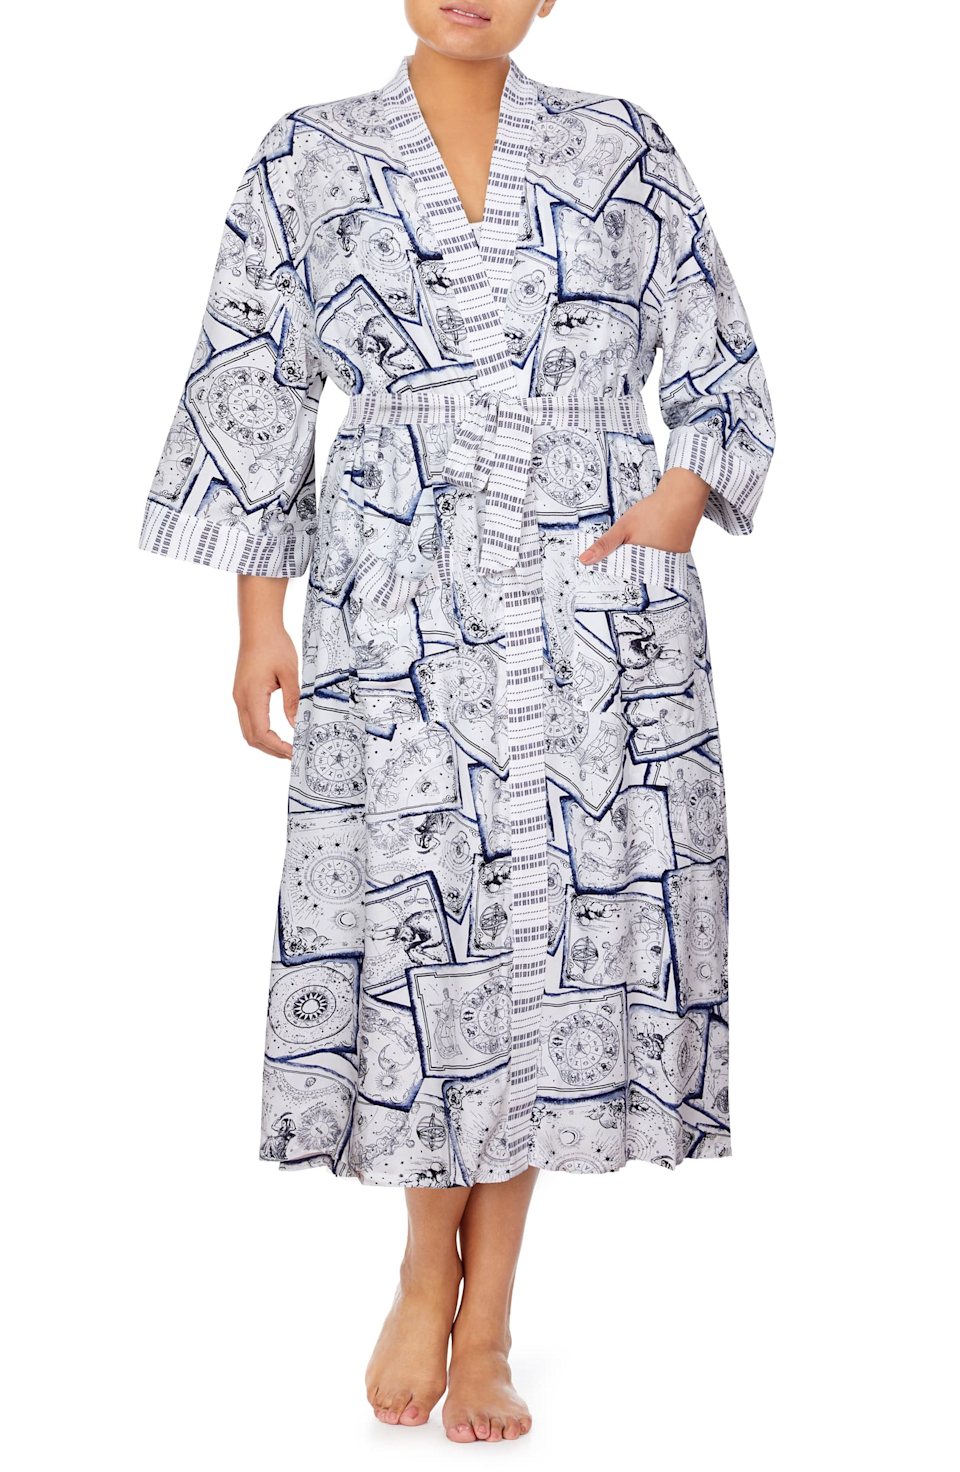 """<h2>Refinery29 Print Maxi Robe</h2><br>To be very transparent, we do know how to make a pretty great robe. We designed this one in a fun horoscope inspired print and a lightweight fabric, making this the perfect option for fall transition weather. <br><br><br><br><strong>Refinery29</strong> Print Maxi Robe, $, available at <a href=""""https://go.skimresources.com/?id=30283X879131&url=https%3A%2F%2Fwww.nordstrom.com%2Fs%2Frefinery29-print-maxi-robe%2F5597880"""" rel=""""nofollow noopener"""" target=""""_blank"""" data-ylk=""""slk:Nordstrom"""" class=""""link rapid-noclick-resp"""">Nordstrom</a>"""